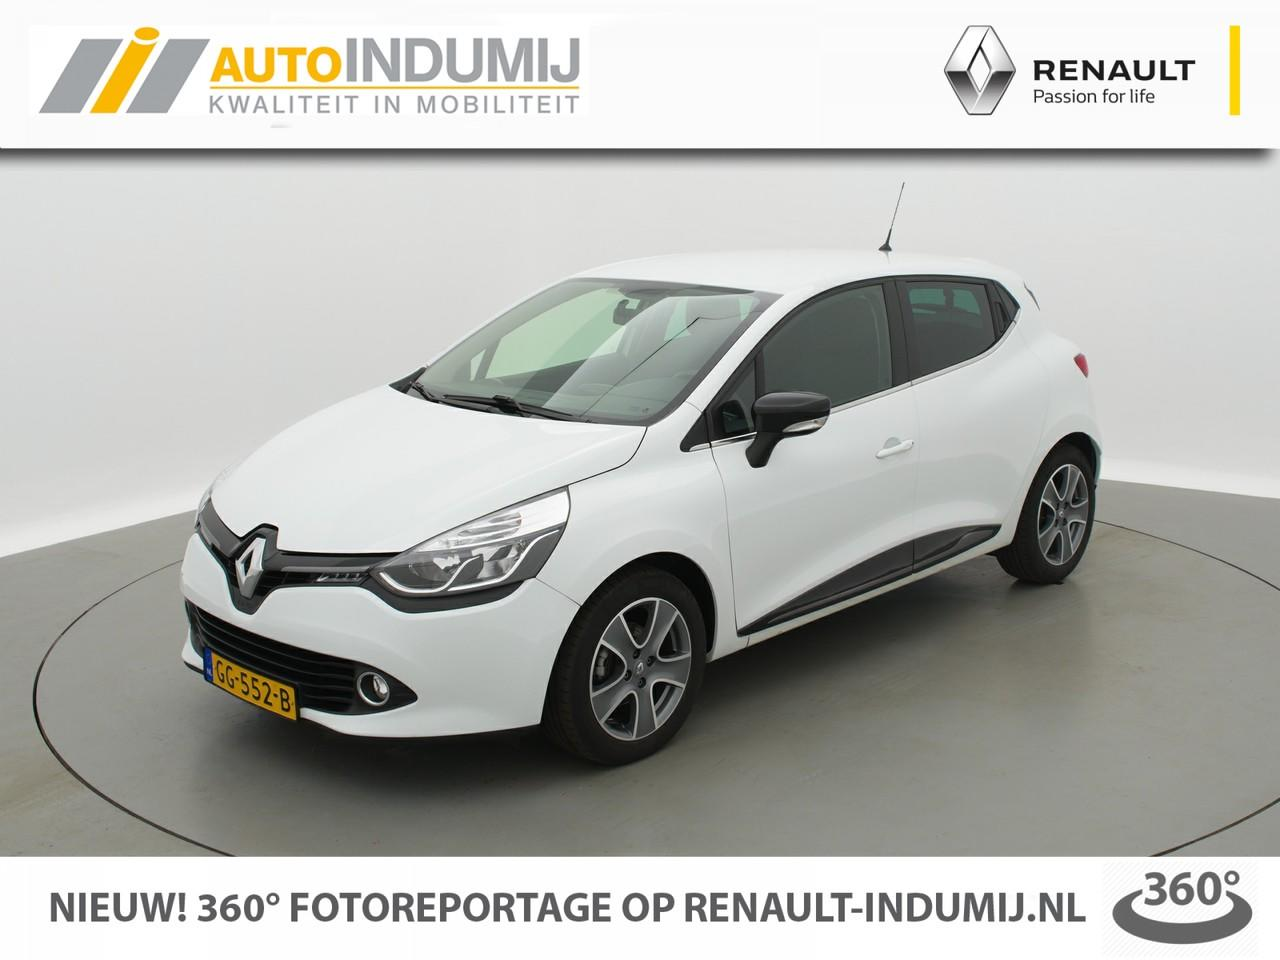 Renault Clio Tce 90 night&day // airco // navi // lm velgen